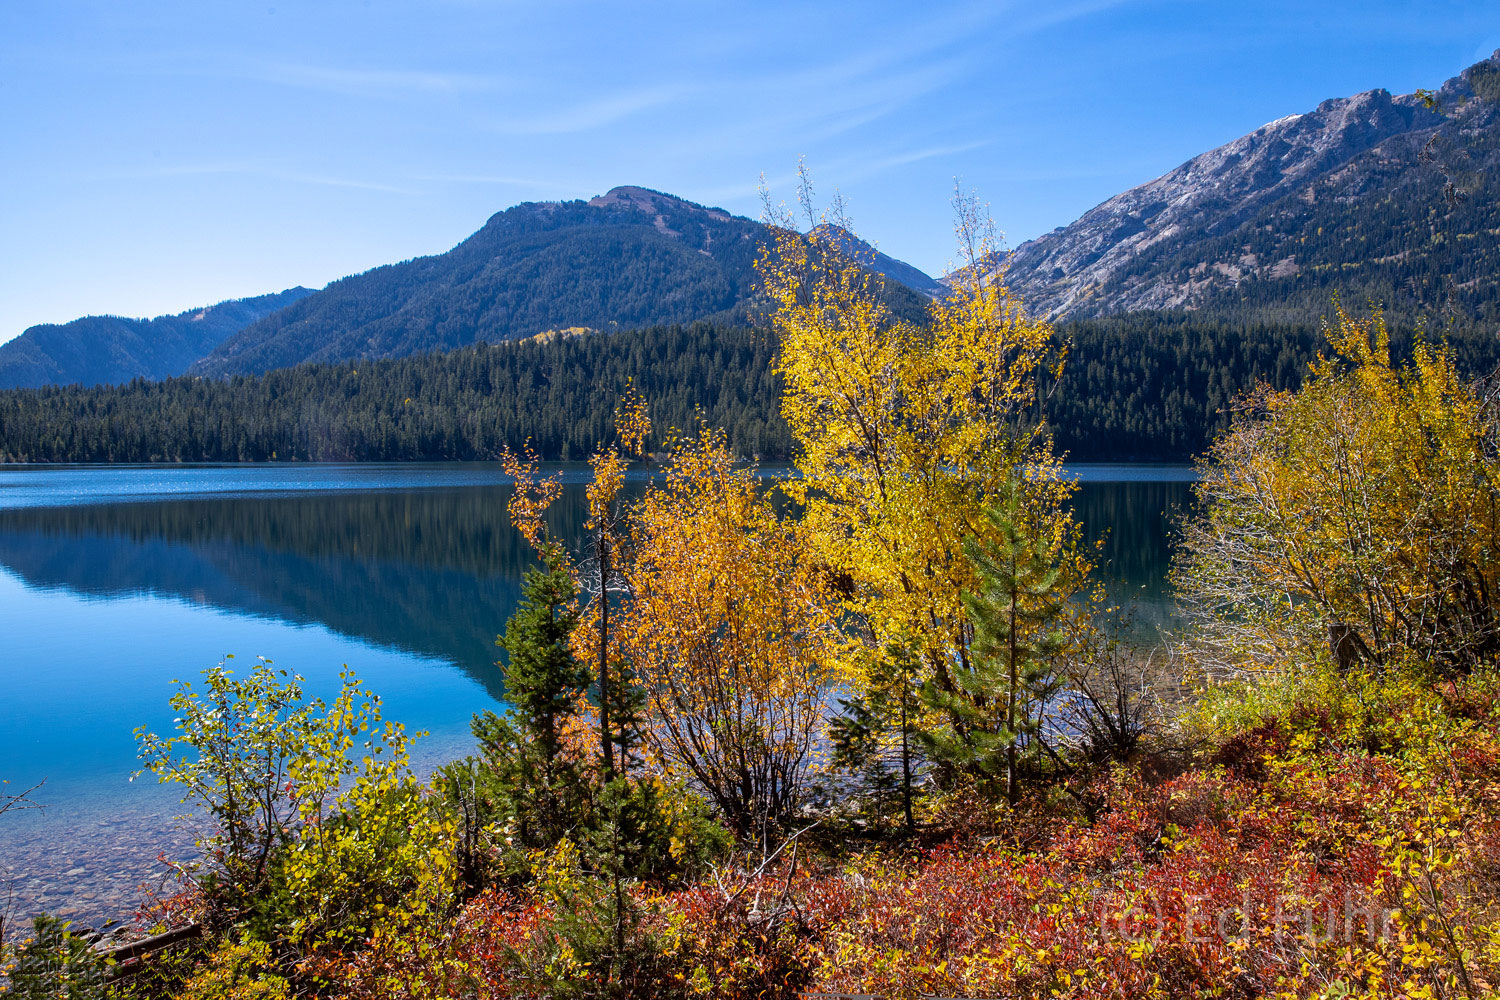 The shores of Phelps Lake have turned a vibrant red this late September afternoon.